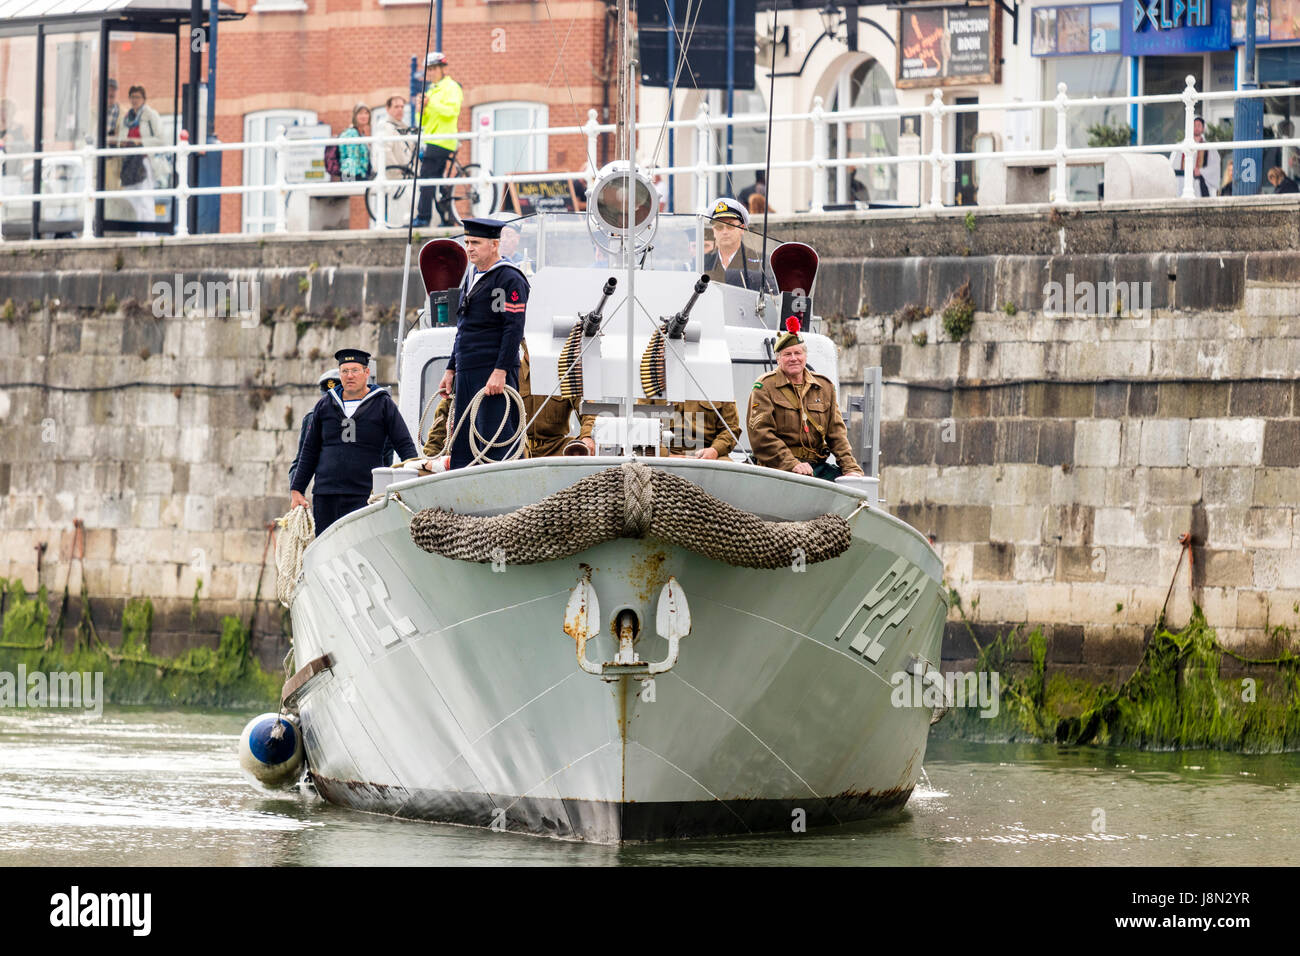 Dunkirk evacuation re-enactment at Ramsgate harbour in England. US type 21 patrol boat, the restored P22 approaching - Stock Image